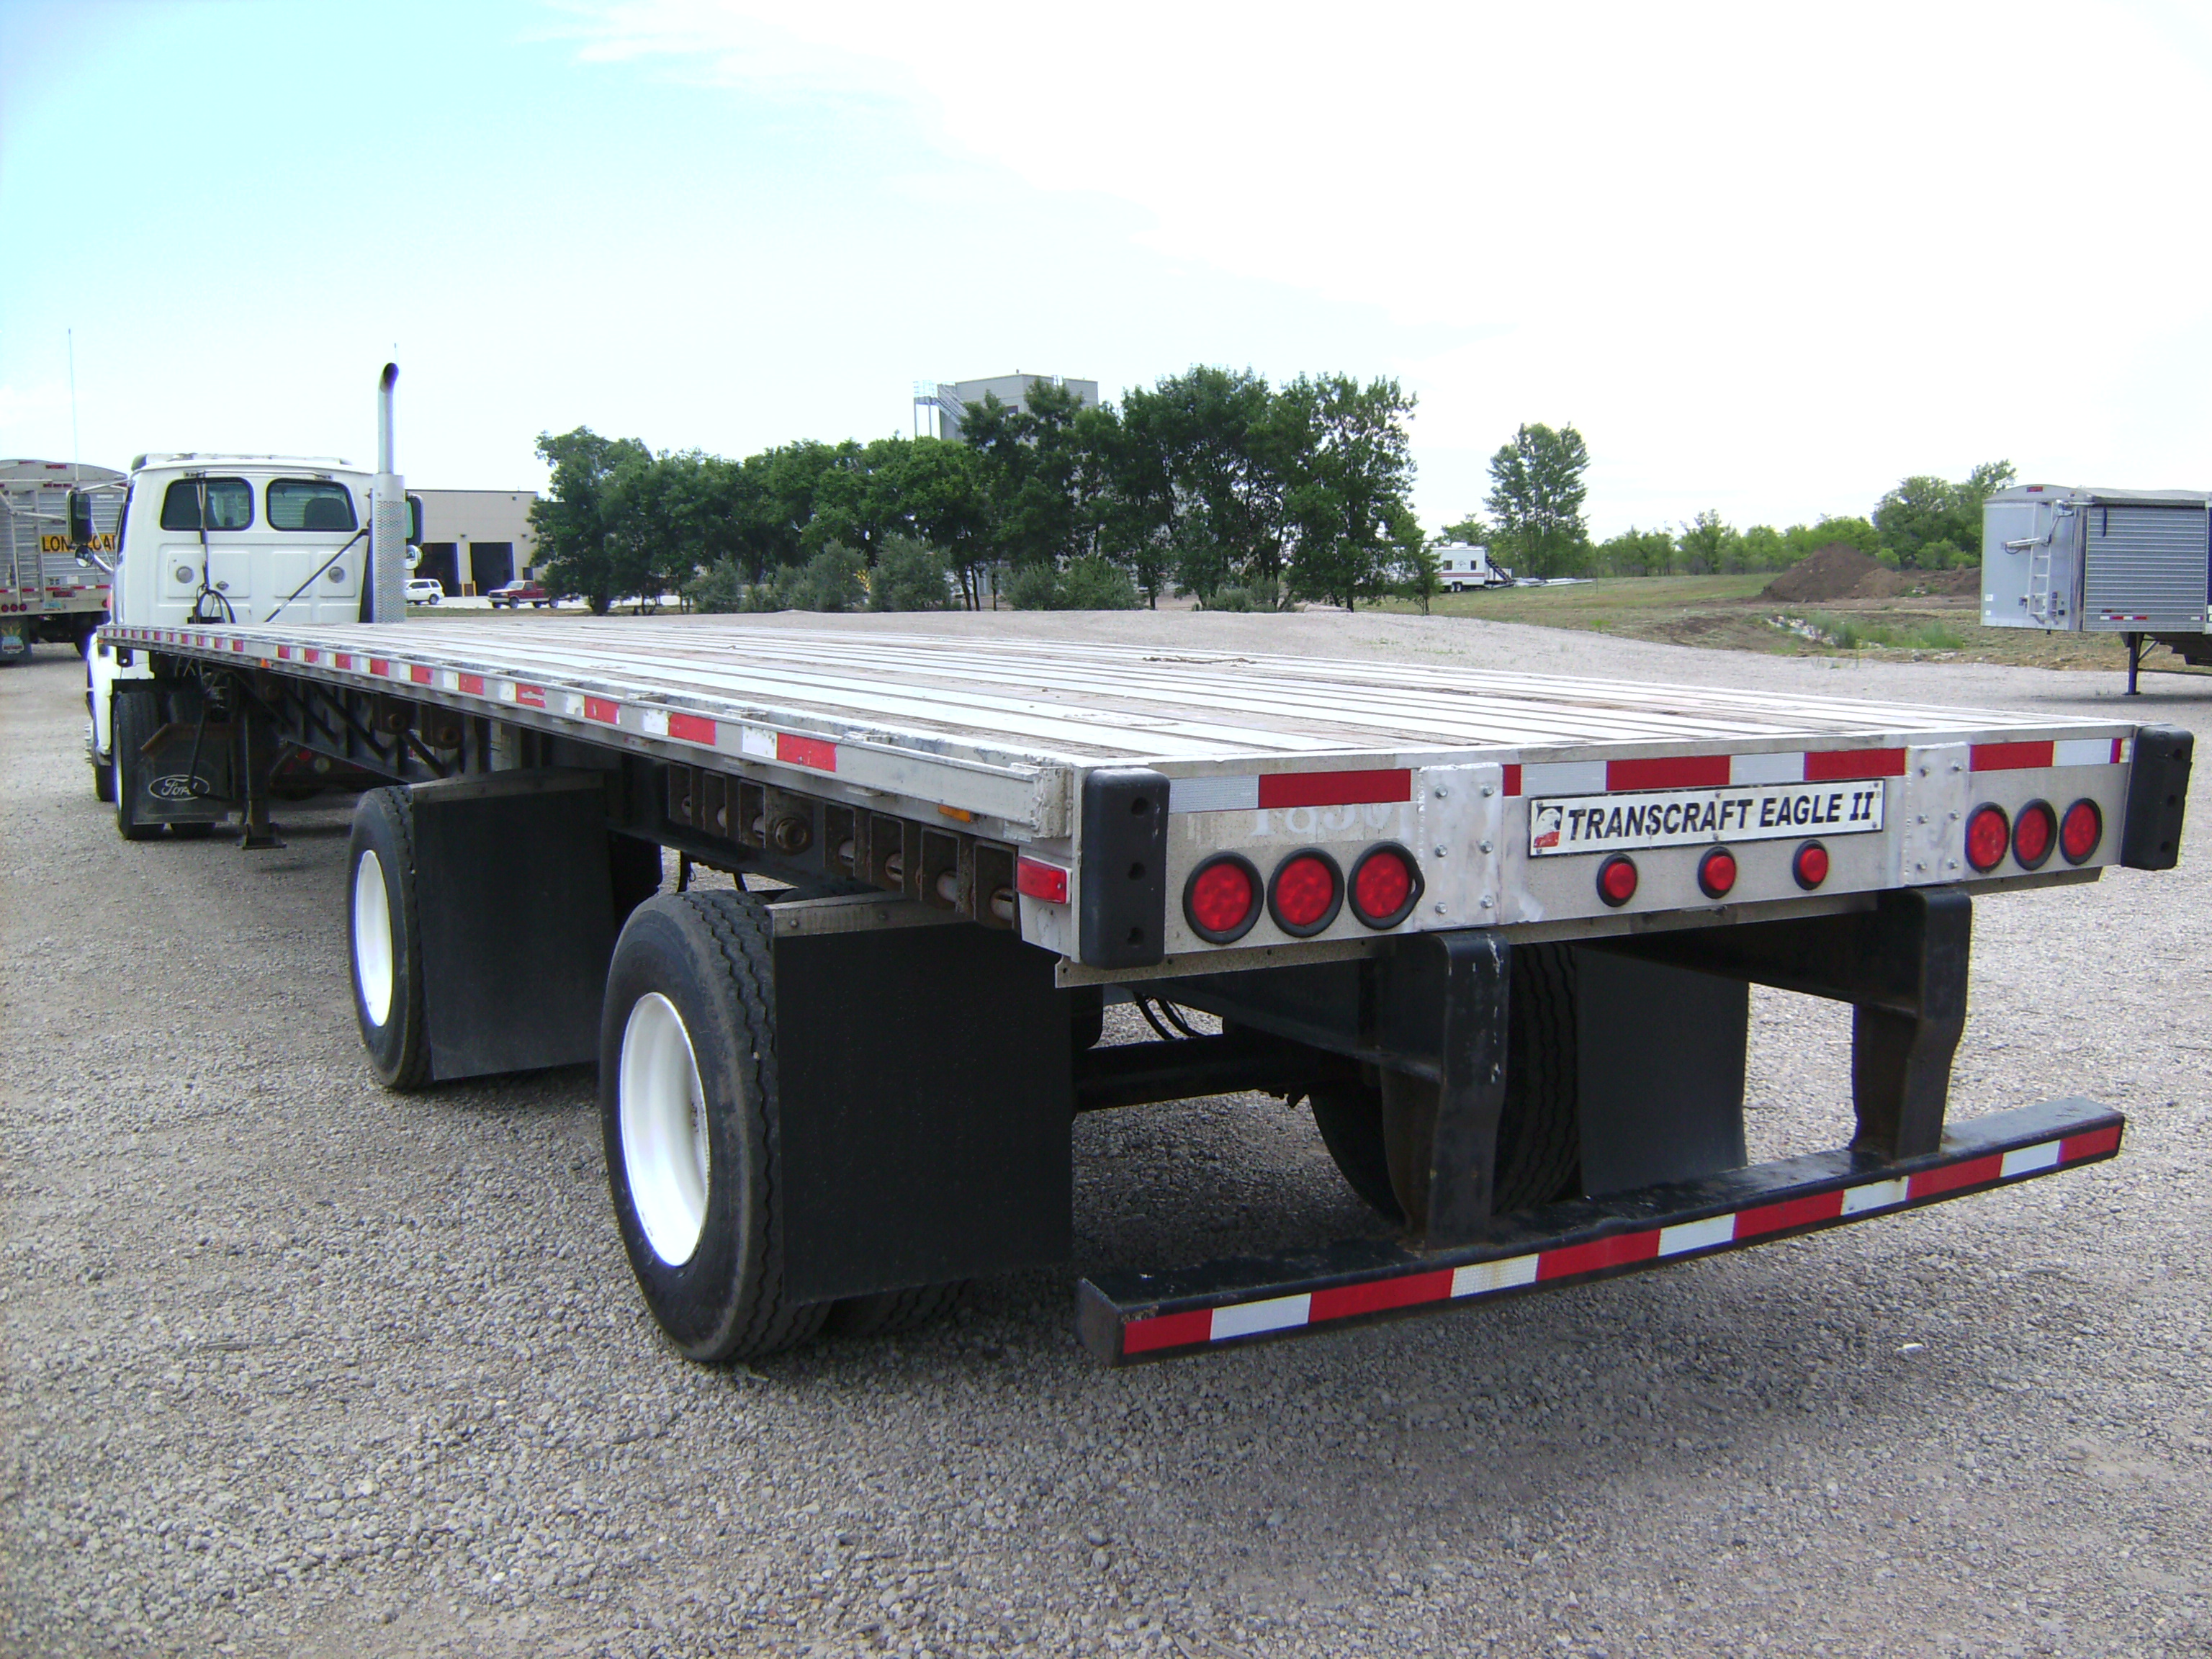 http://www.semitrailersalesandleasing.com/image/cache/2005_Transcraft_48x102_flatbed_012740_005.JPG Image